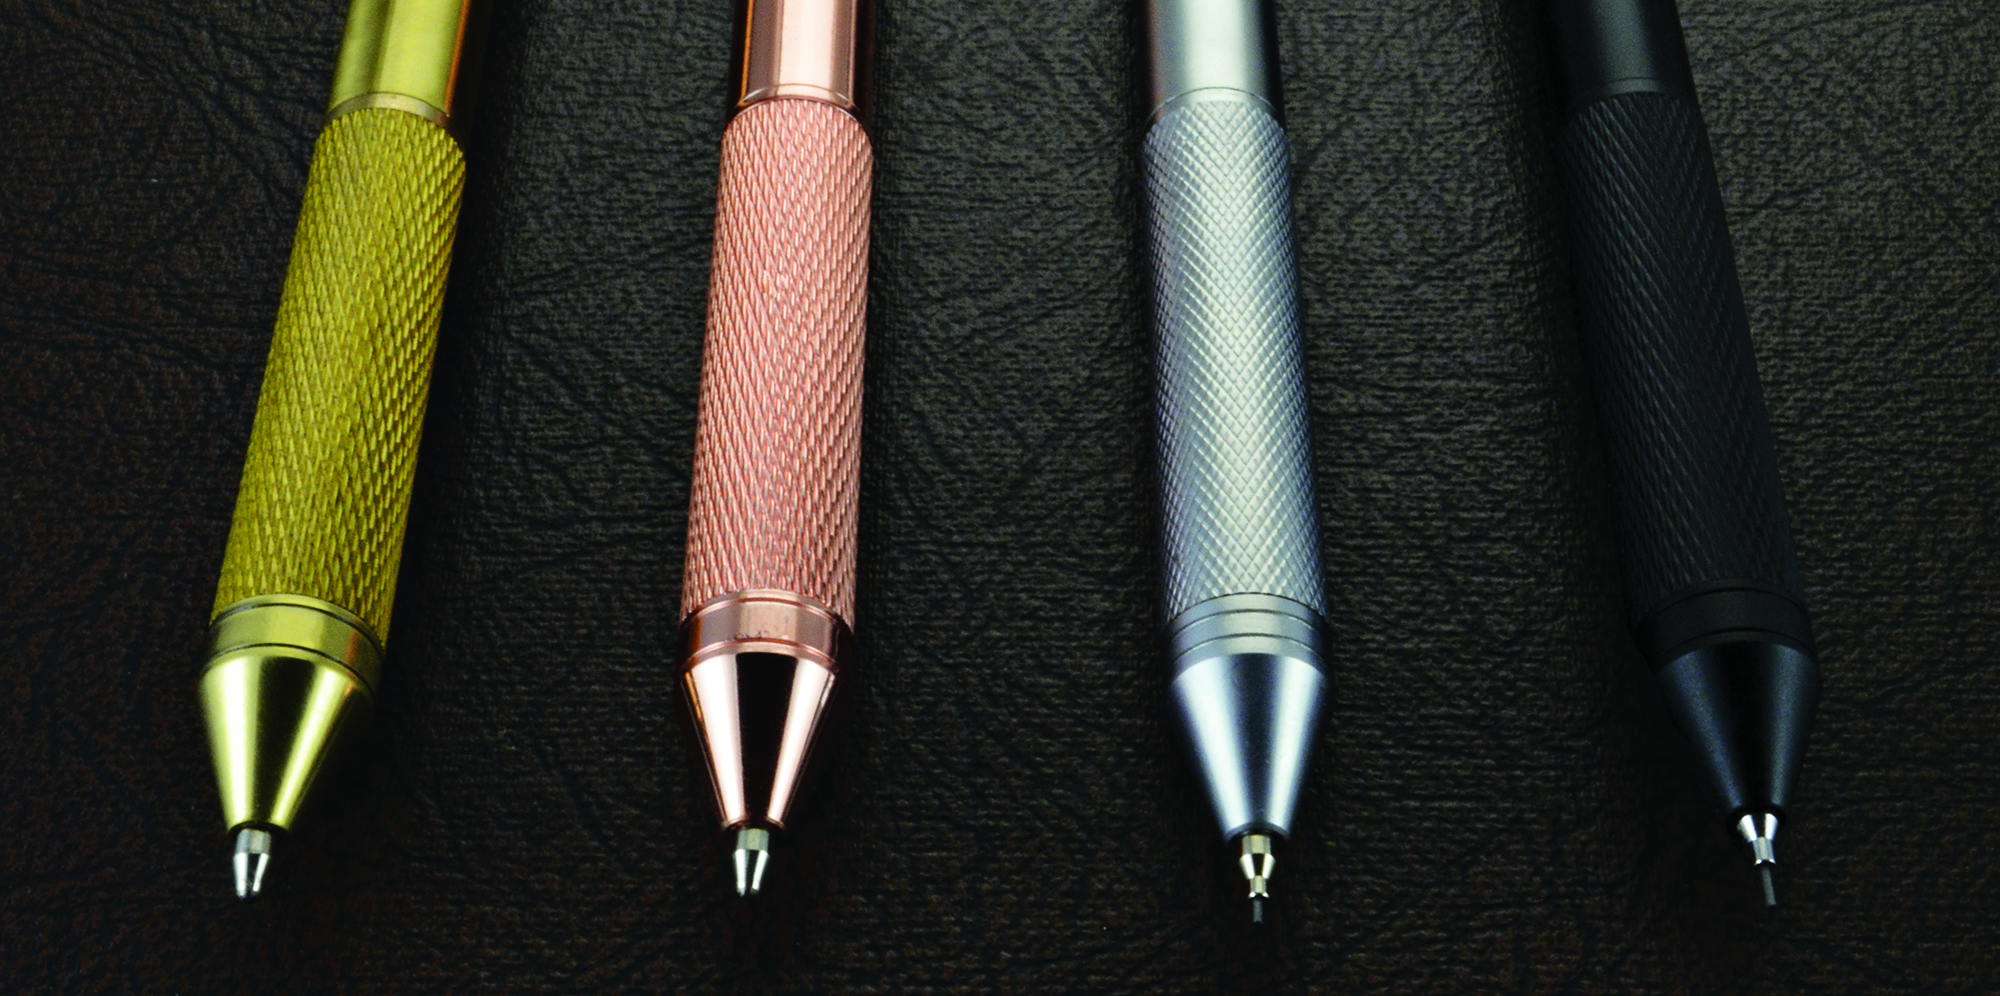 Monteverde Quadro 4 in 1 multi-function pen